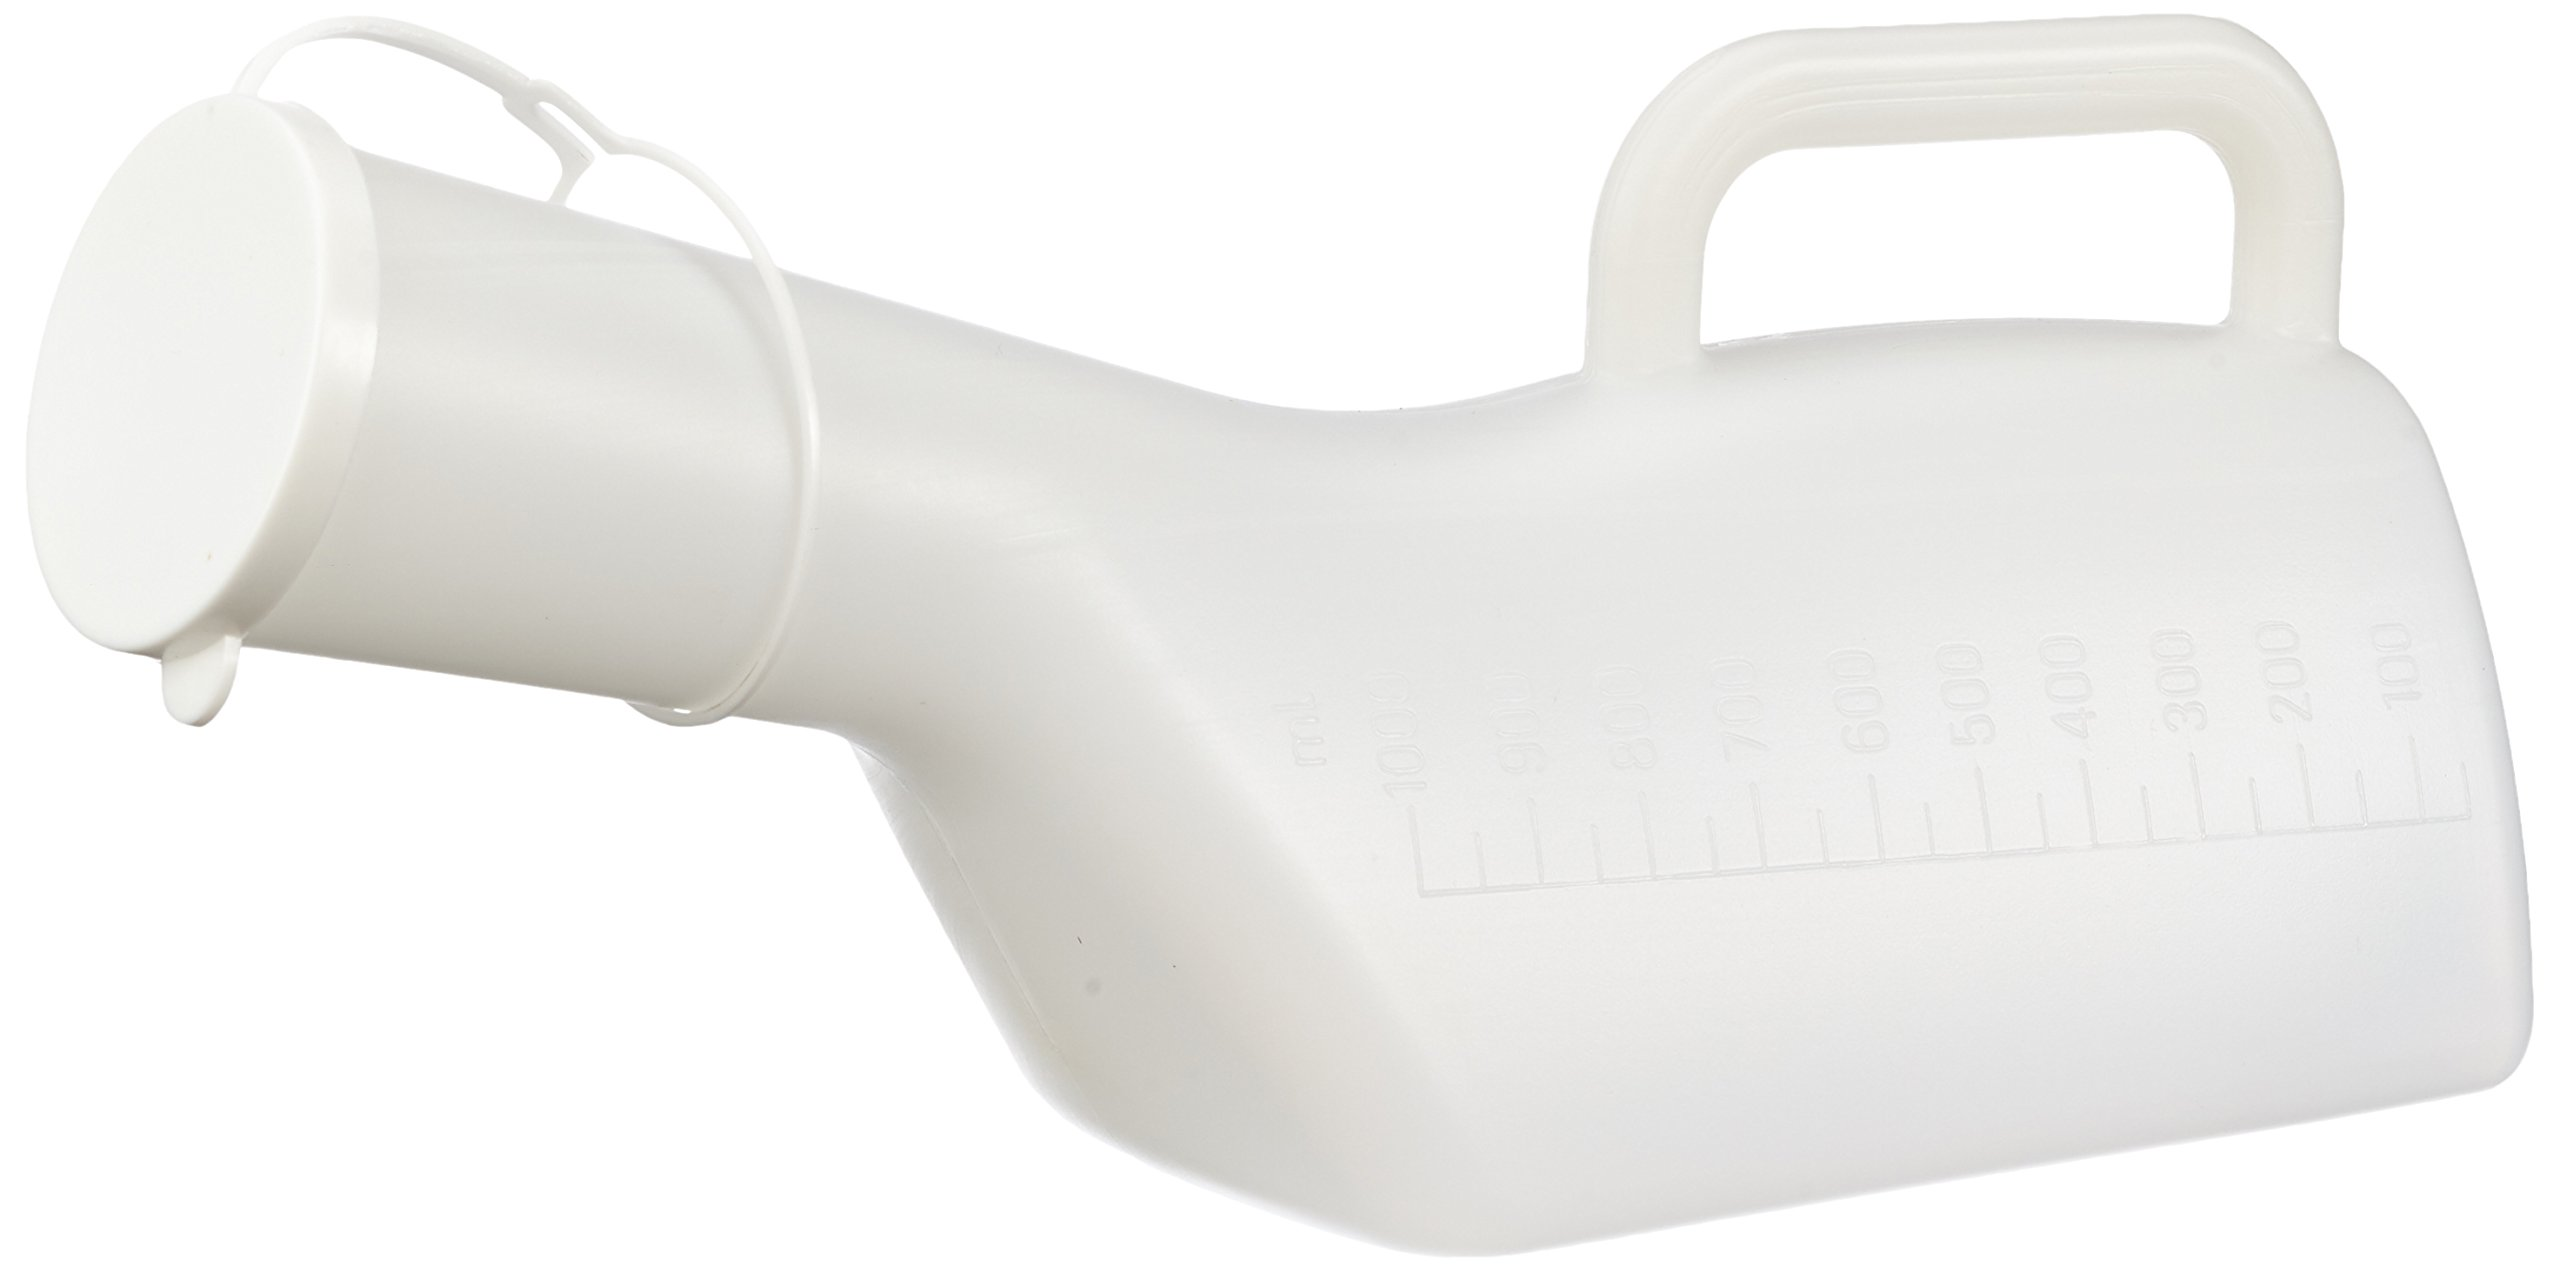 NRS Healthcare M76149 Long Necked Male Urinal